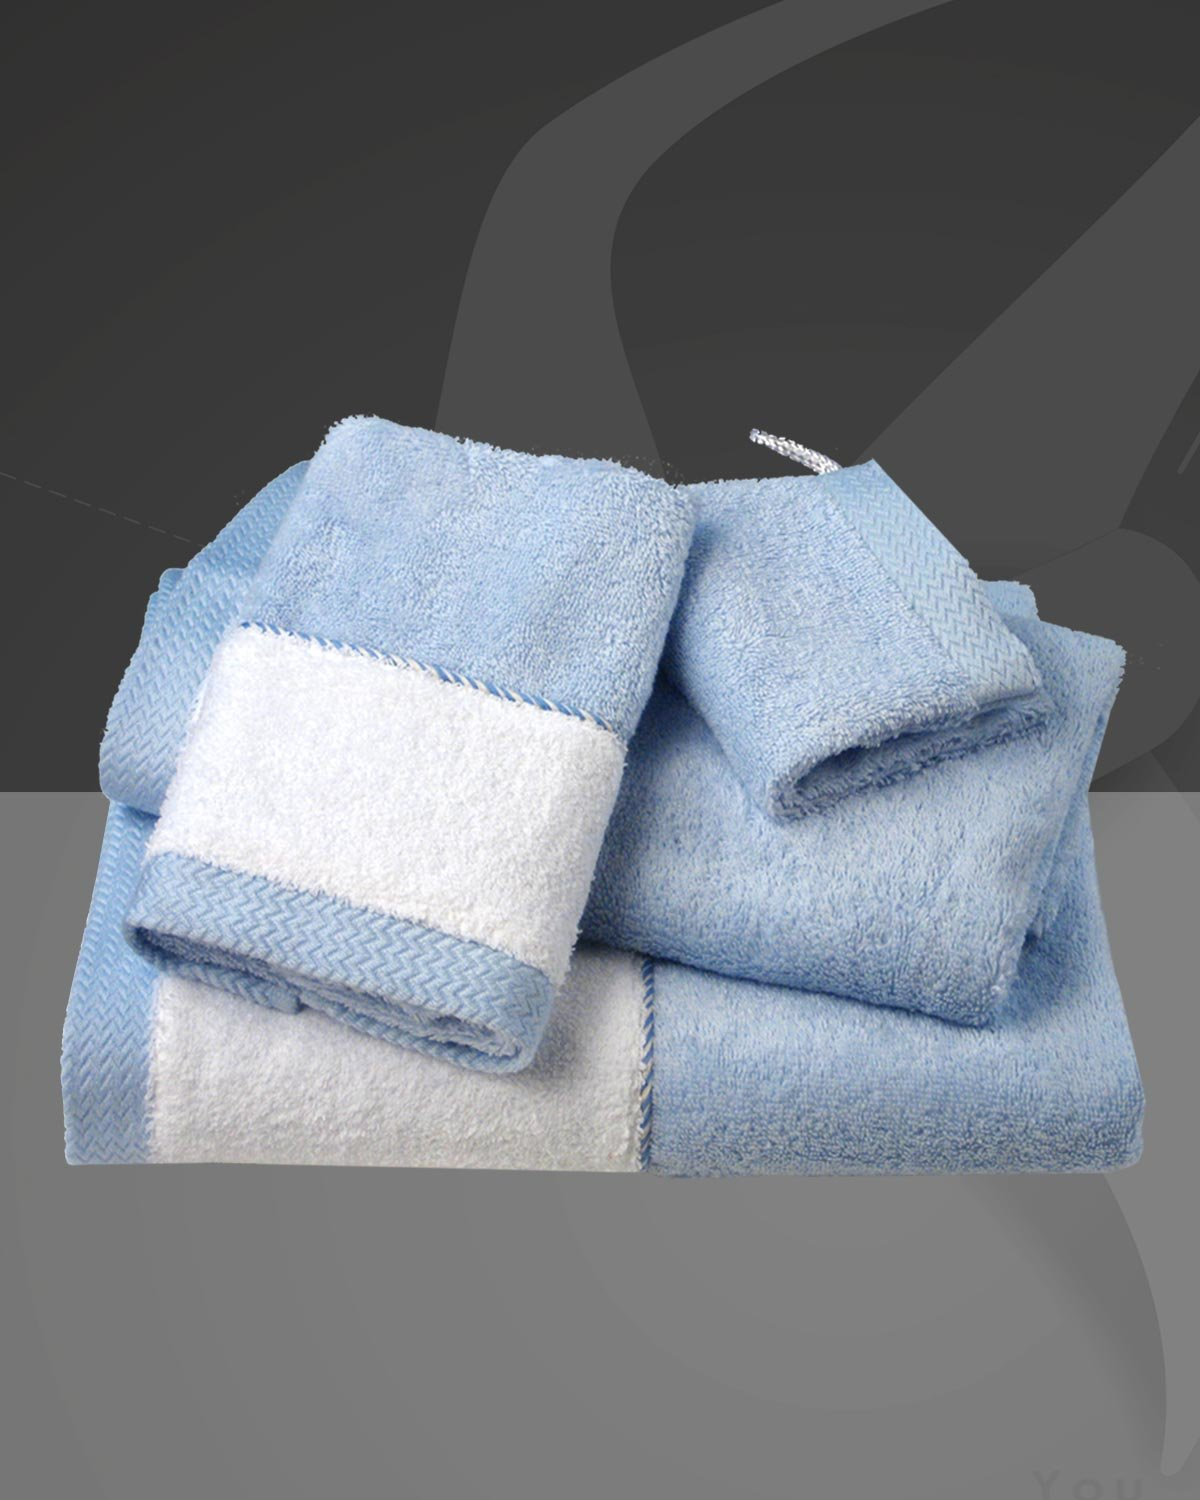 Armani International Théoule Luxury European 4 Piece Toweling Collection Aria Blue- White| Made in Europe